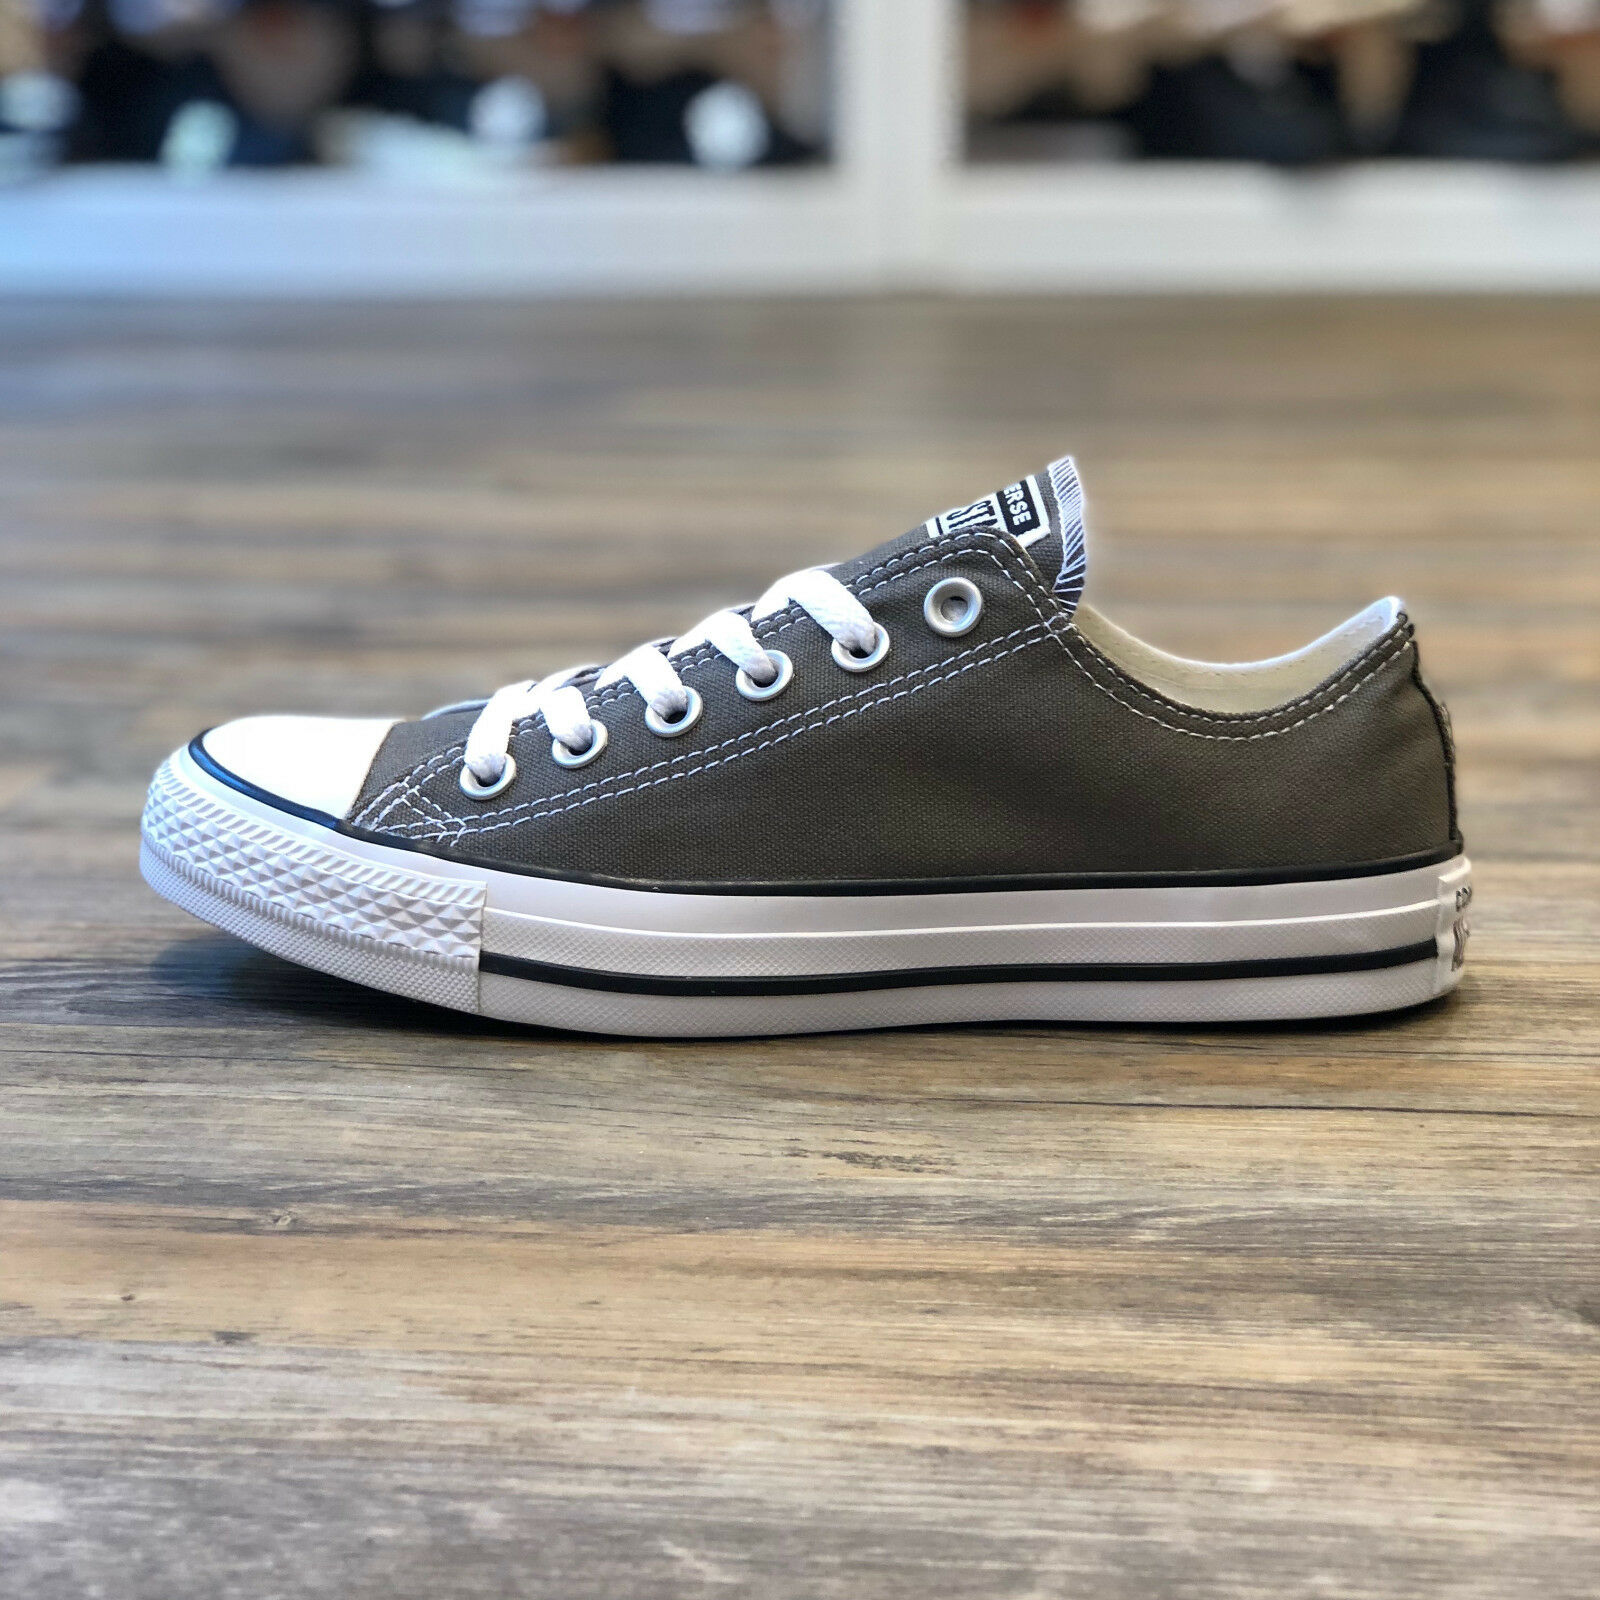 Converse All Star OS Low taille 44,5 gris Chaussures Turn baskets Charcoal Femmes 1j794c